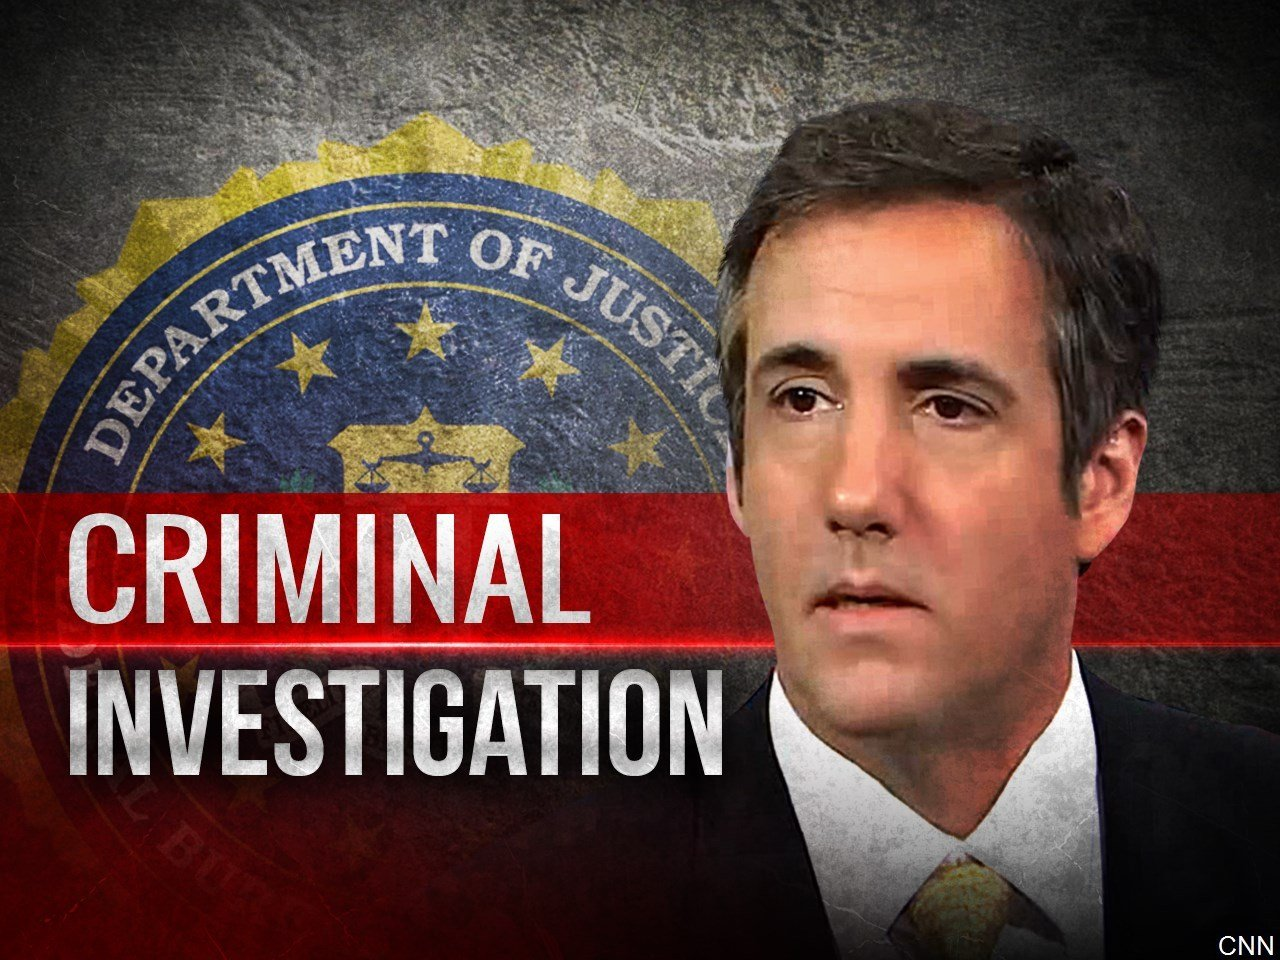 Trump lashes out after Federal Bureau of Investigation raids on his lawyer